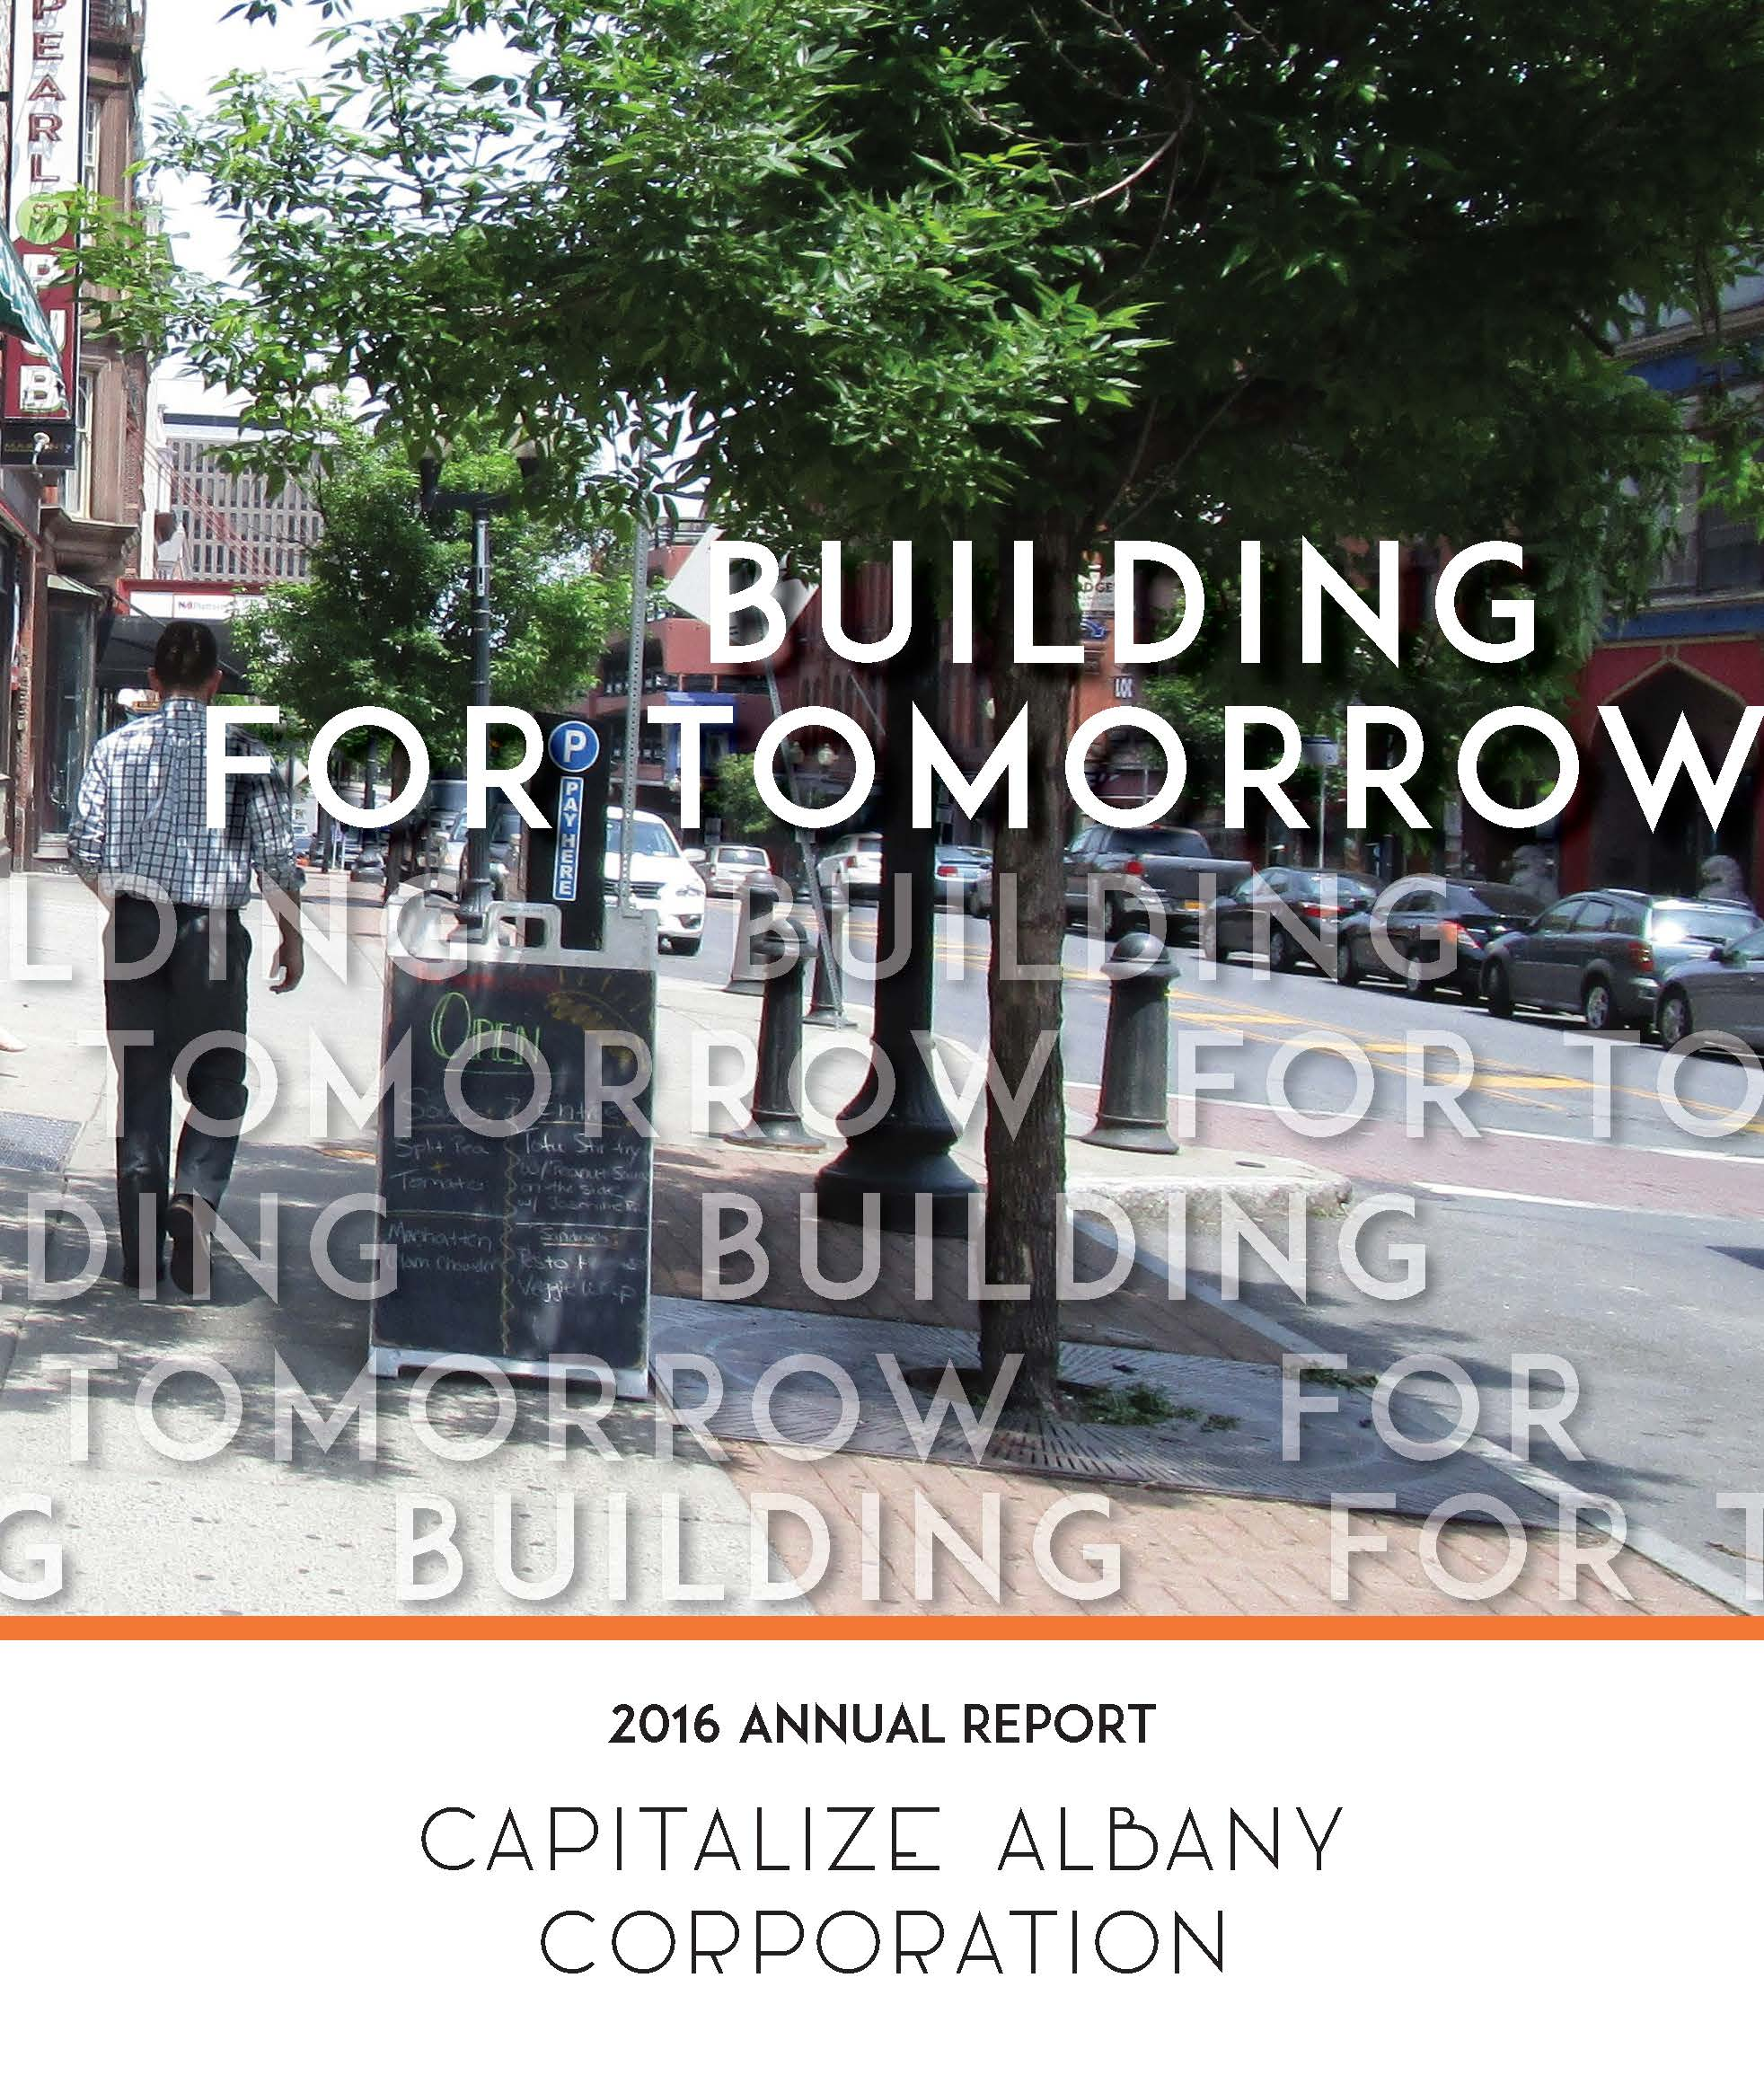 Capitalize Albany 2016 Annual Report